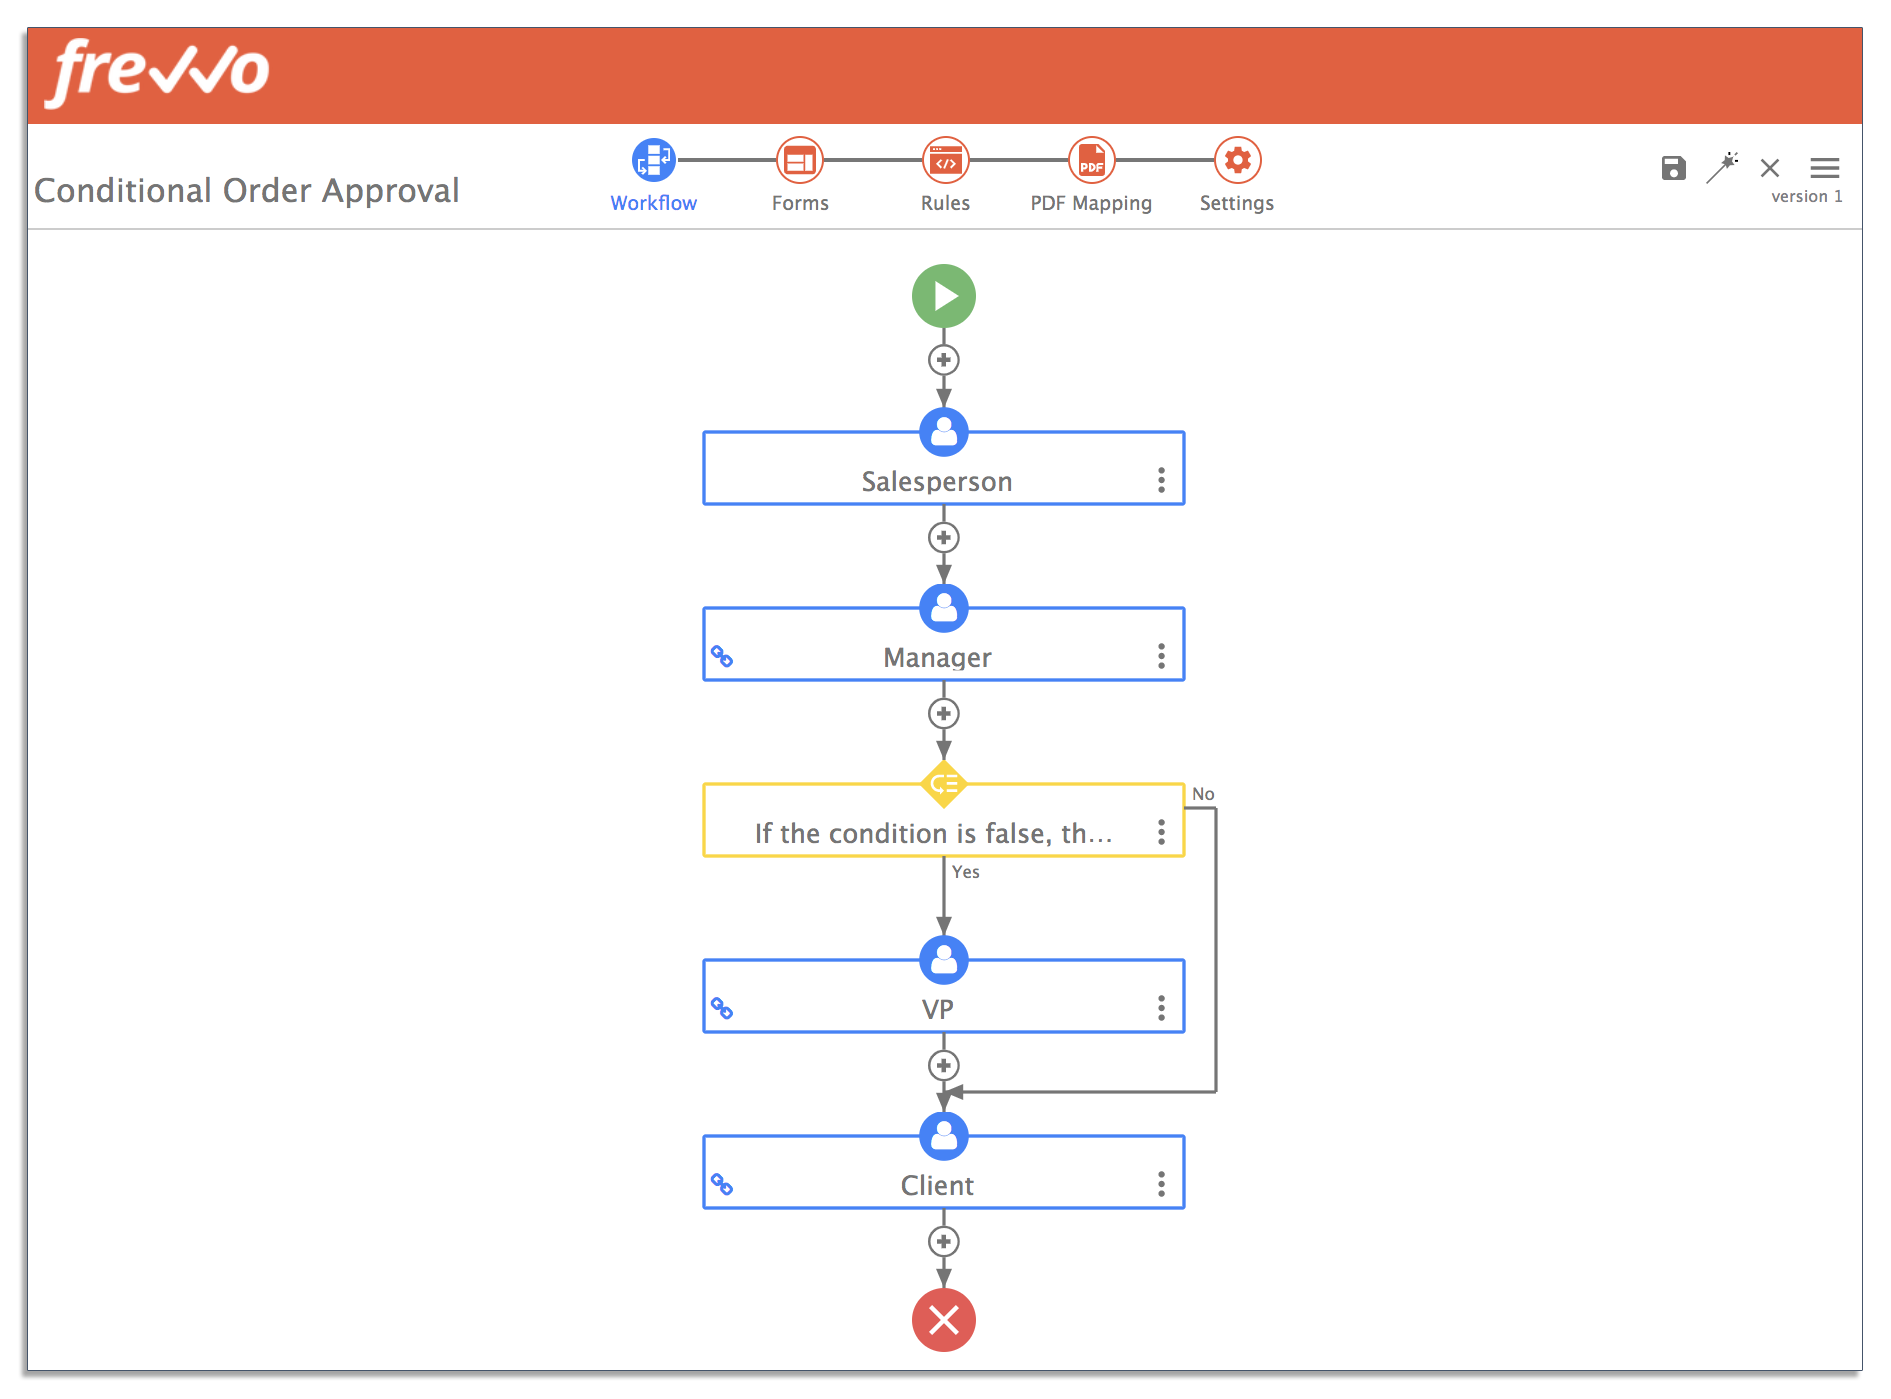 Sales order workflow in frevvo